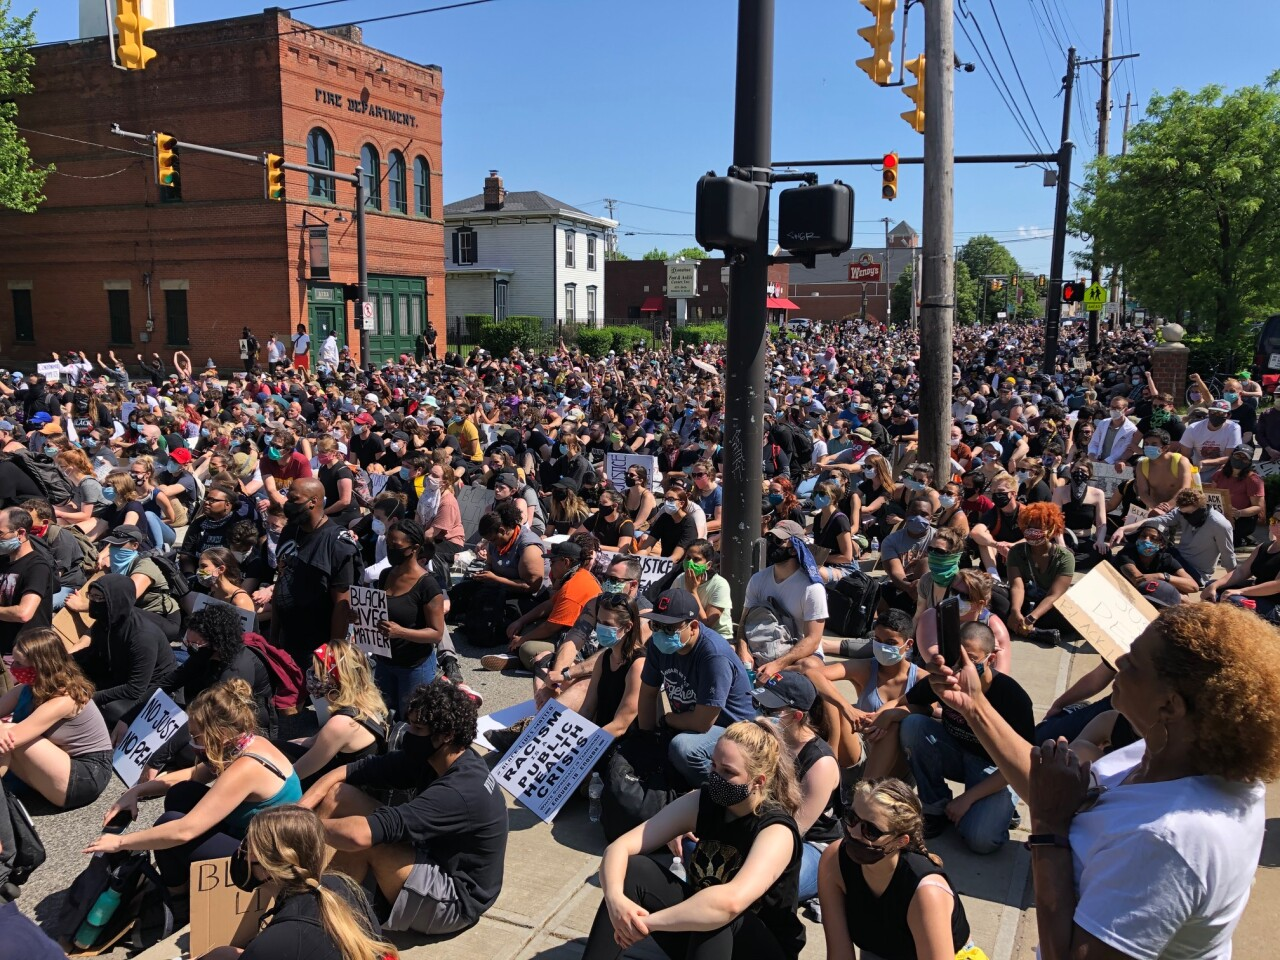 Peaceful protesters sit down on West 25th Street during a weekend demonstration on June 6.